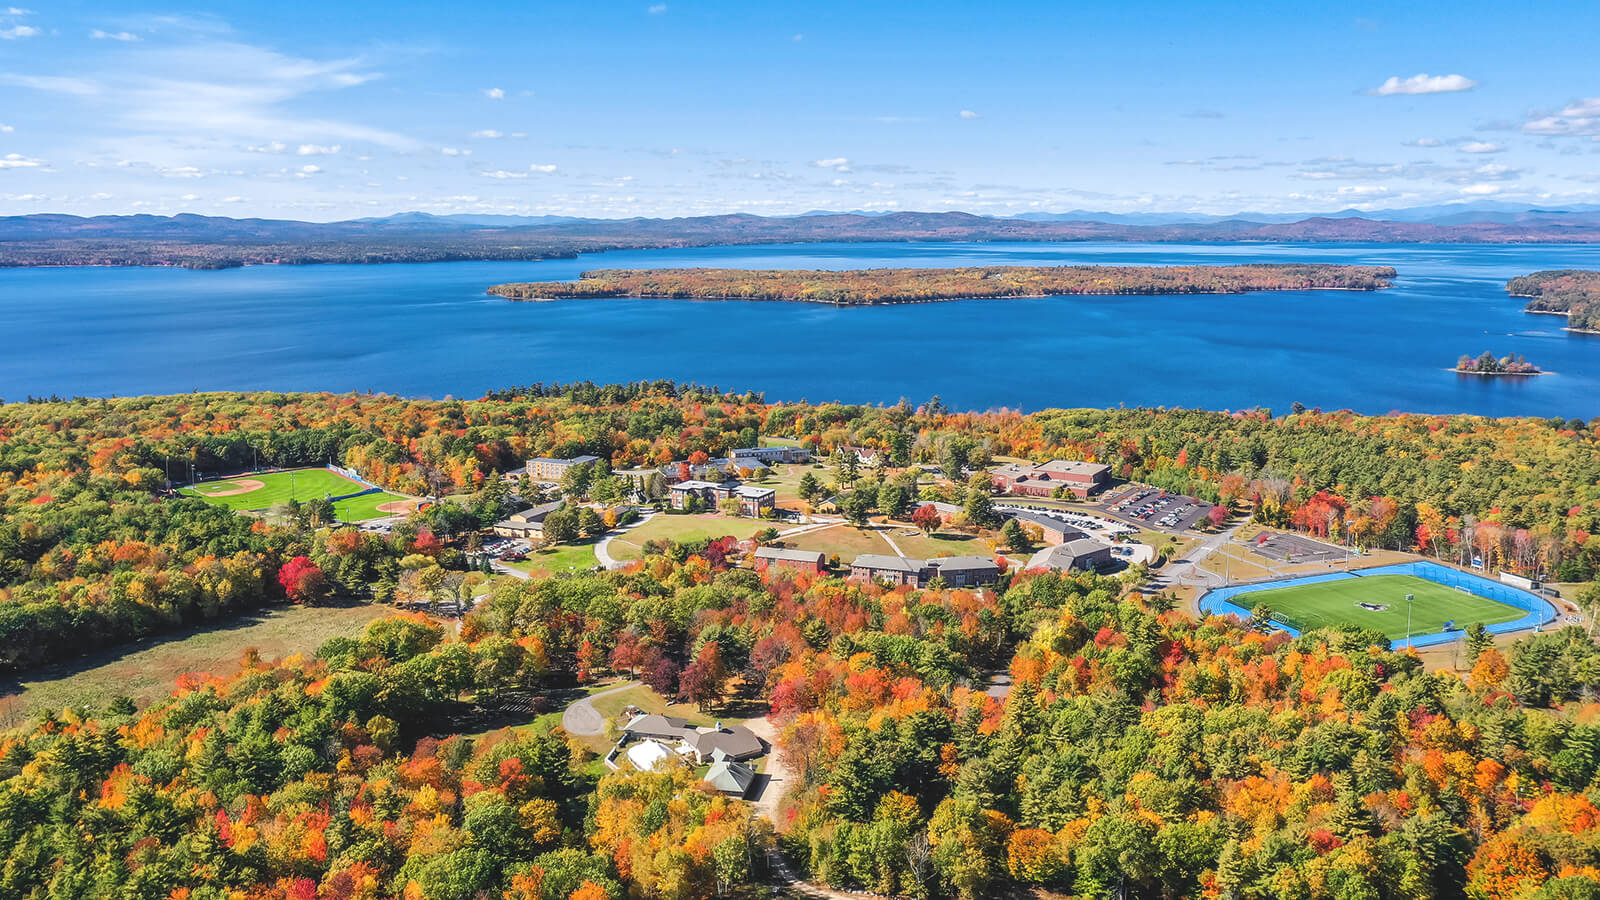 Saint Joseph's College of Maine